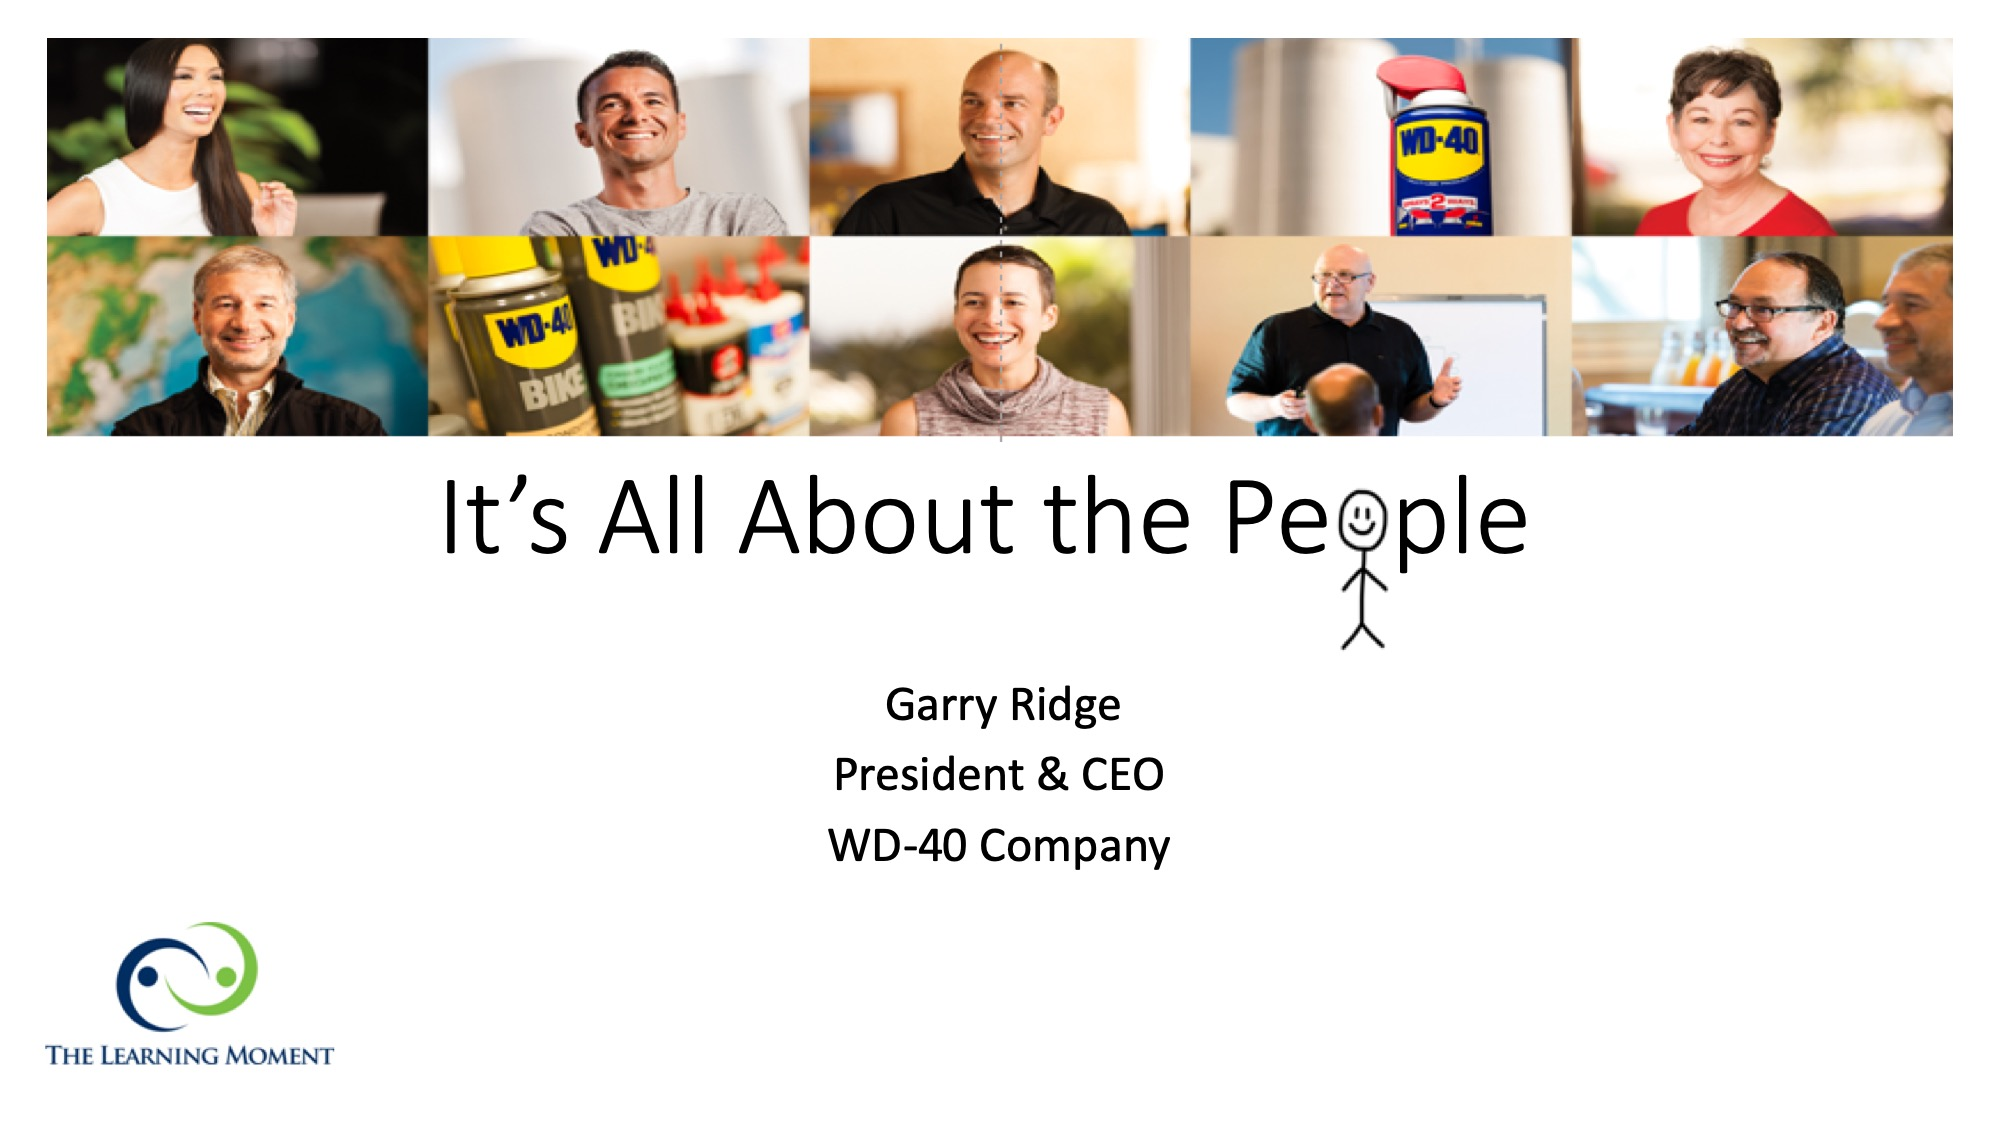 It's all about the people - Garry RidgePresident & CEO, WD-40 Company